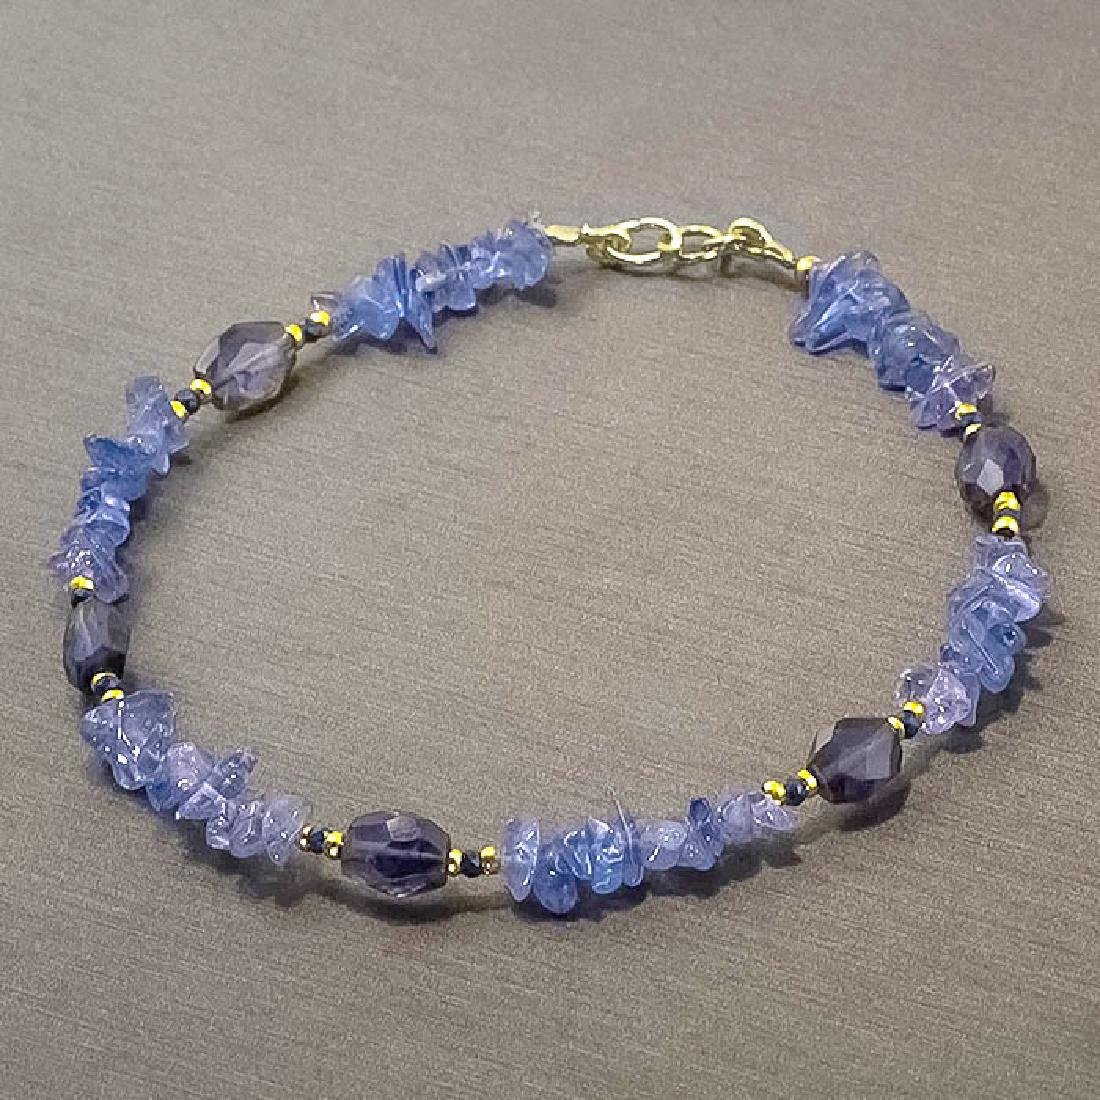 Tanzanite Bracelet with Sapphires - 7